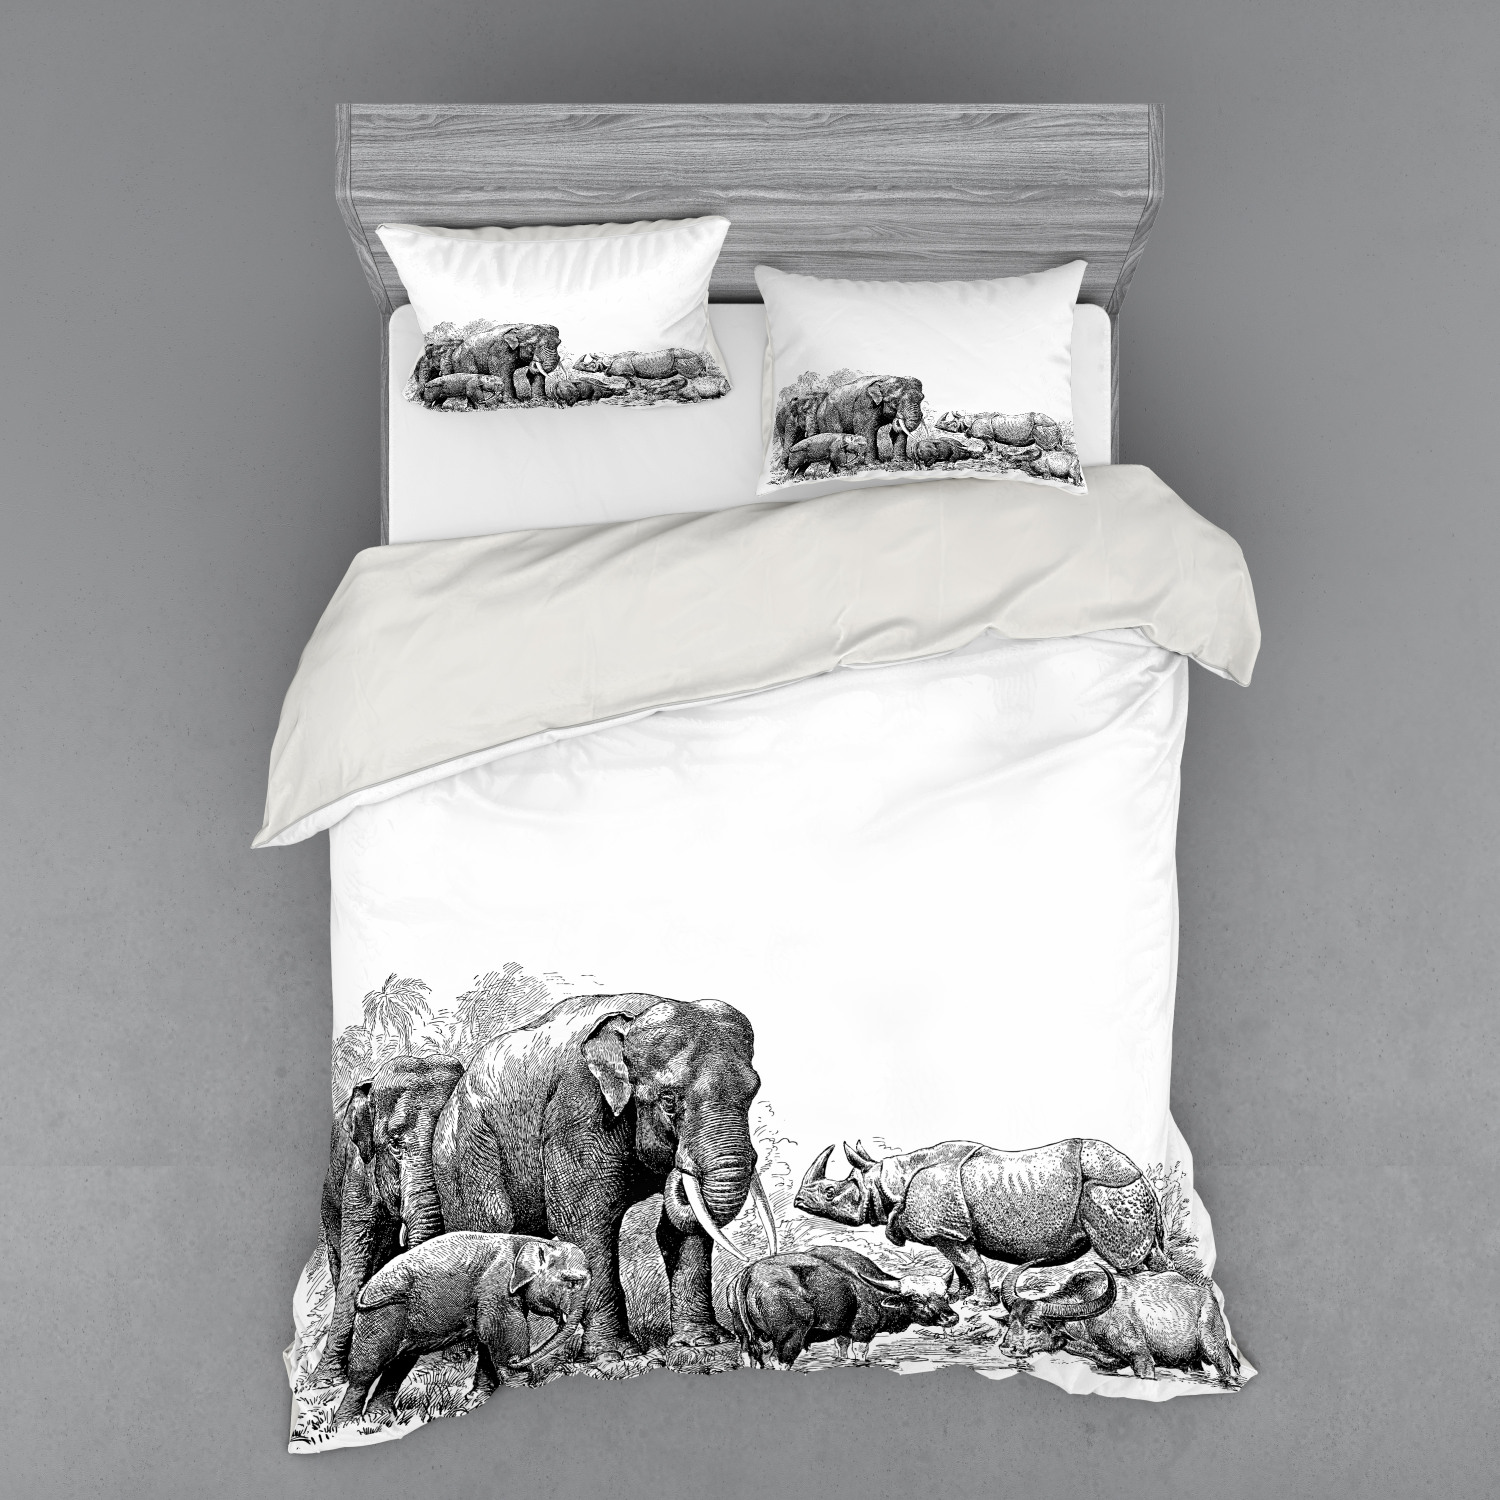 thumbnail 82 - Ambesonne Black White Art Bedding Set Duvet Cover Sham Fitted Sheet in 3 Sizes